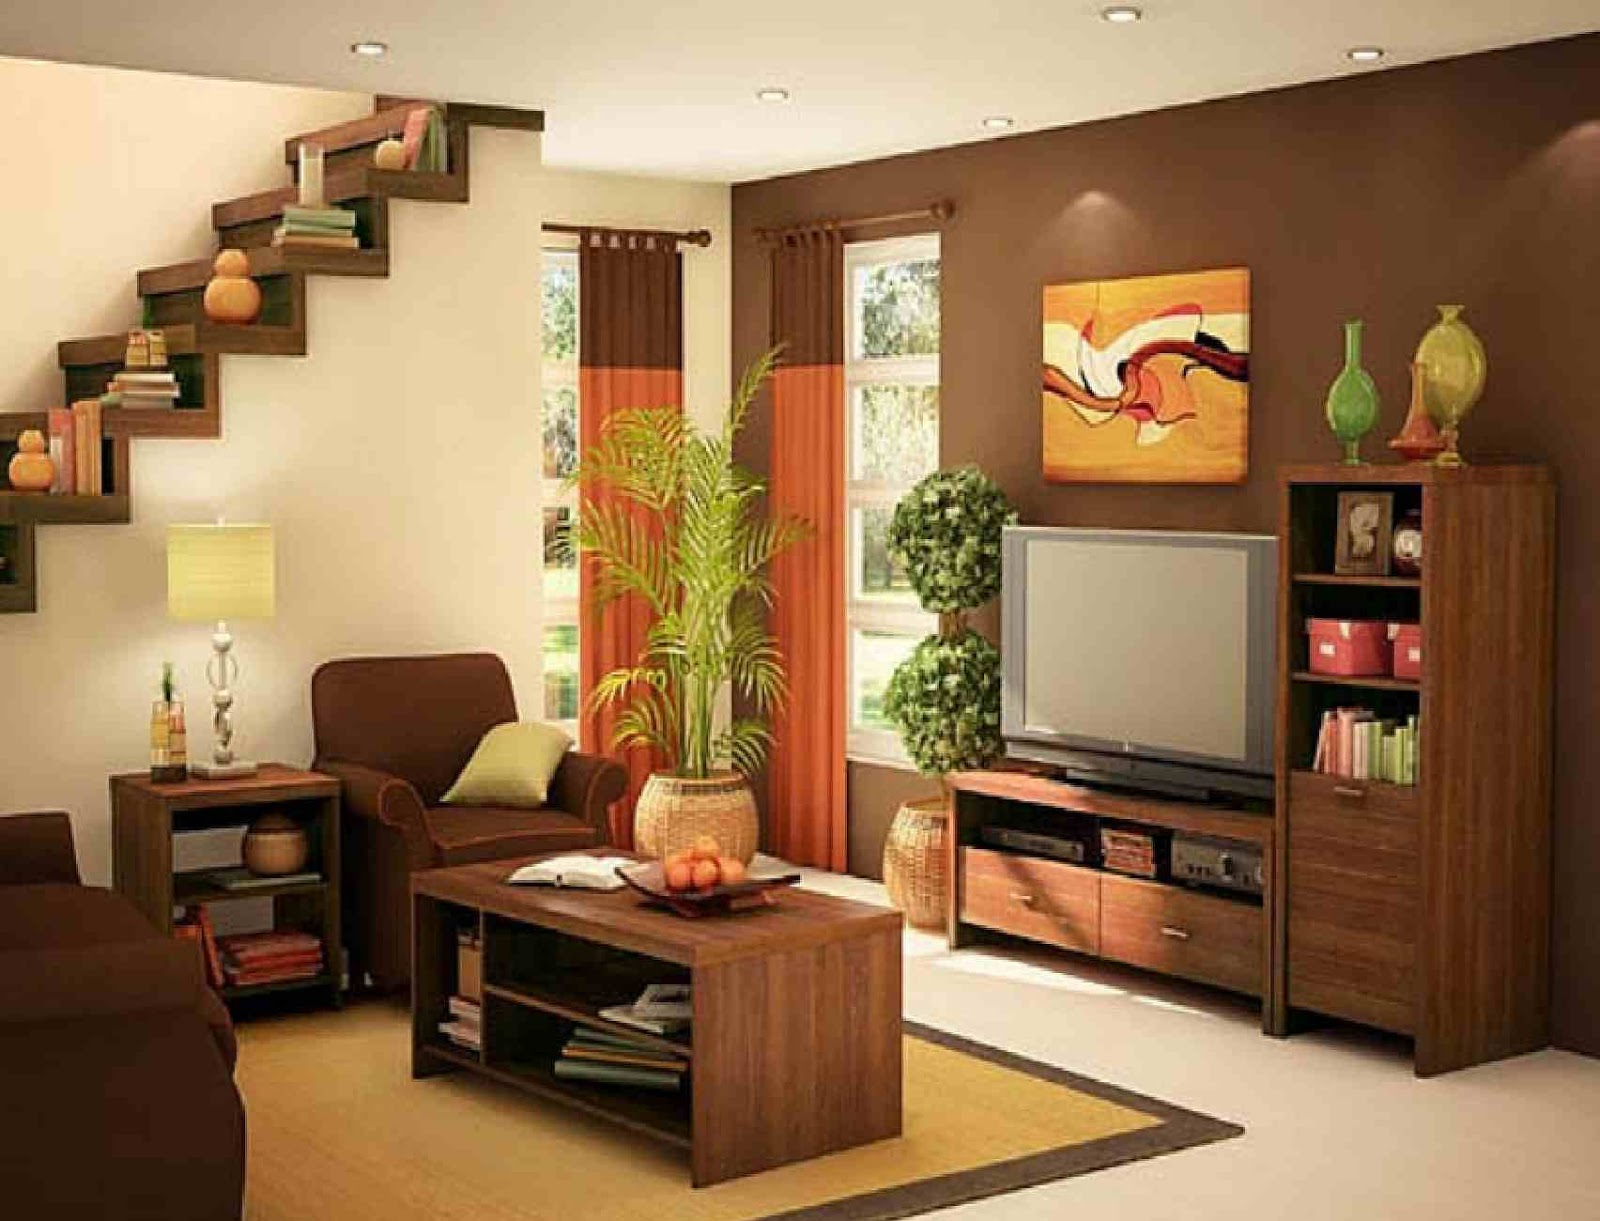 Home interior designs simple living room designs for Small living room interior design